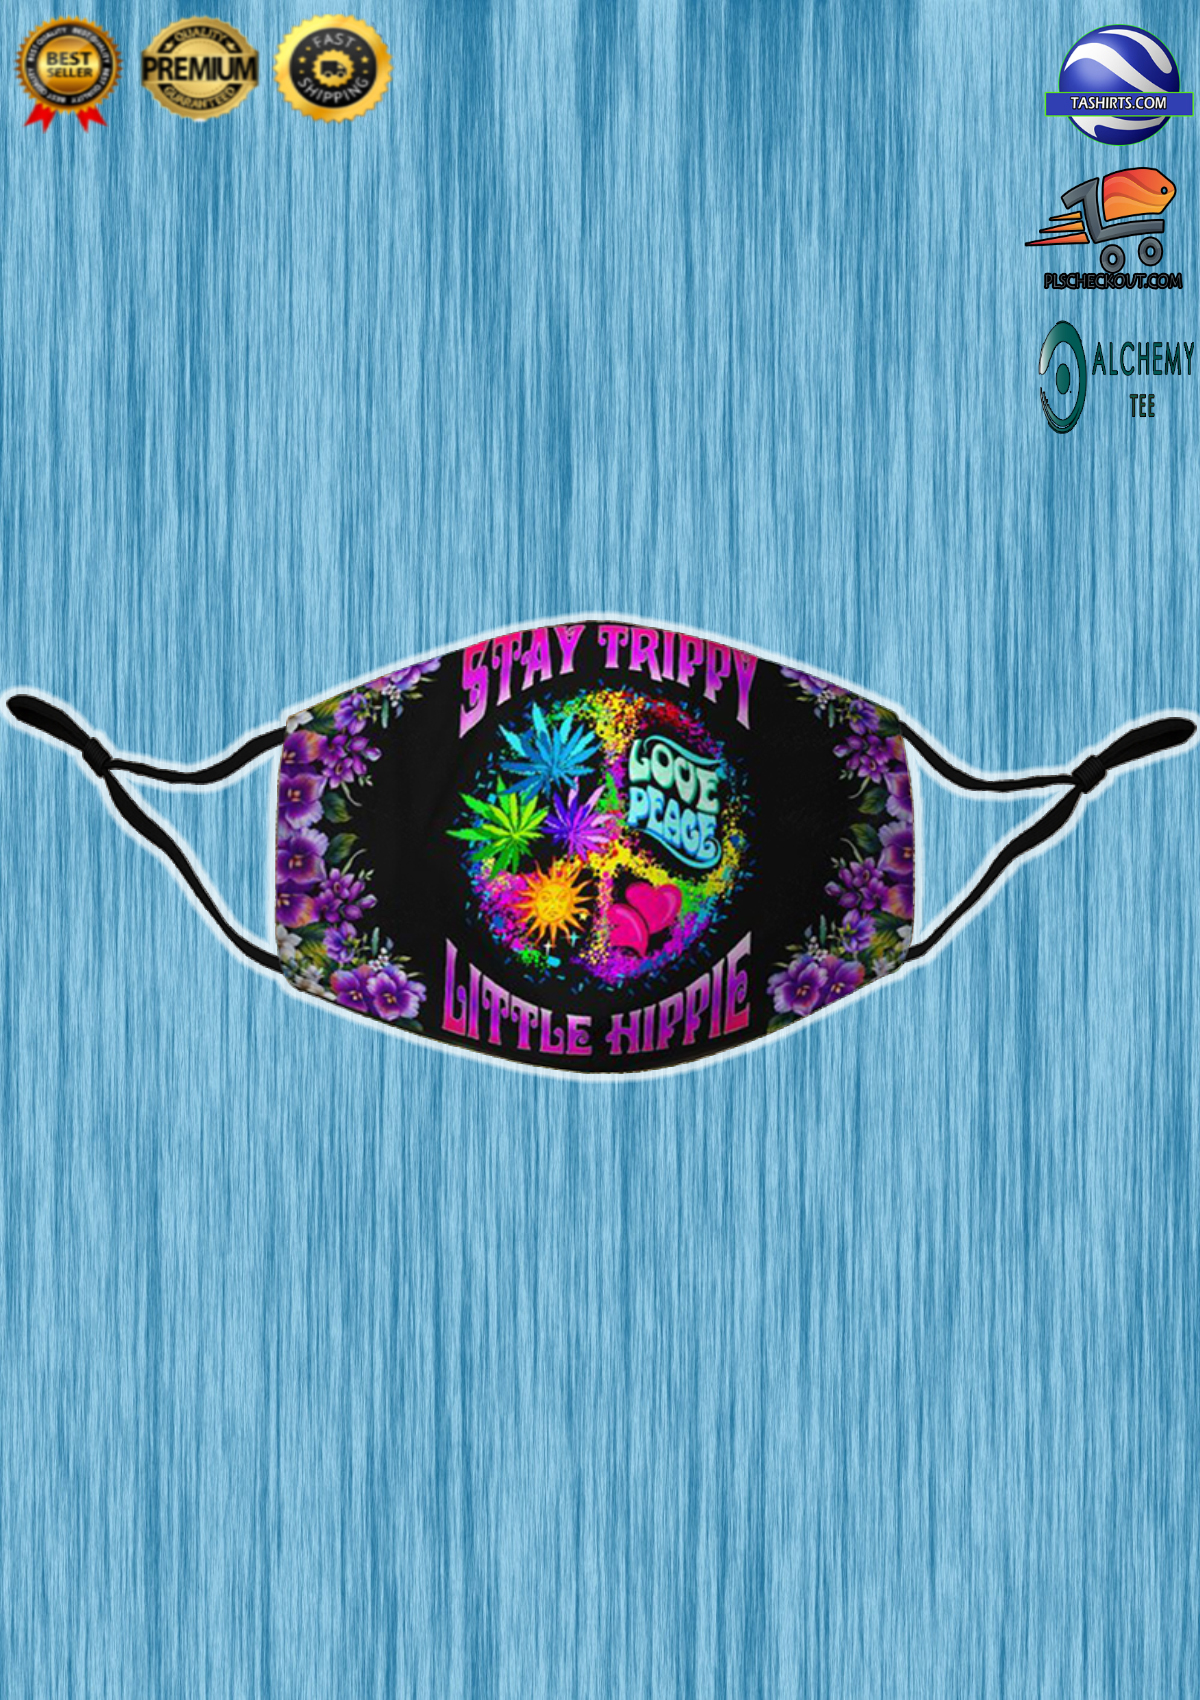 Weed cannabis Stay trippy love peace little hippie face mask